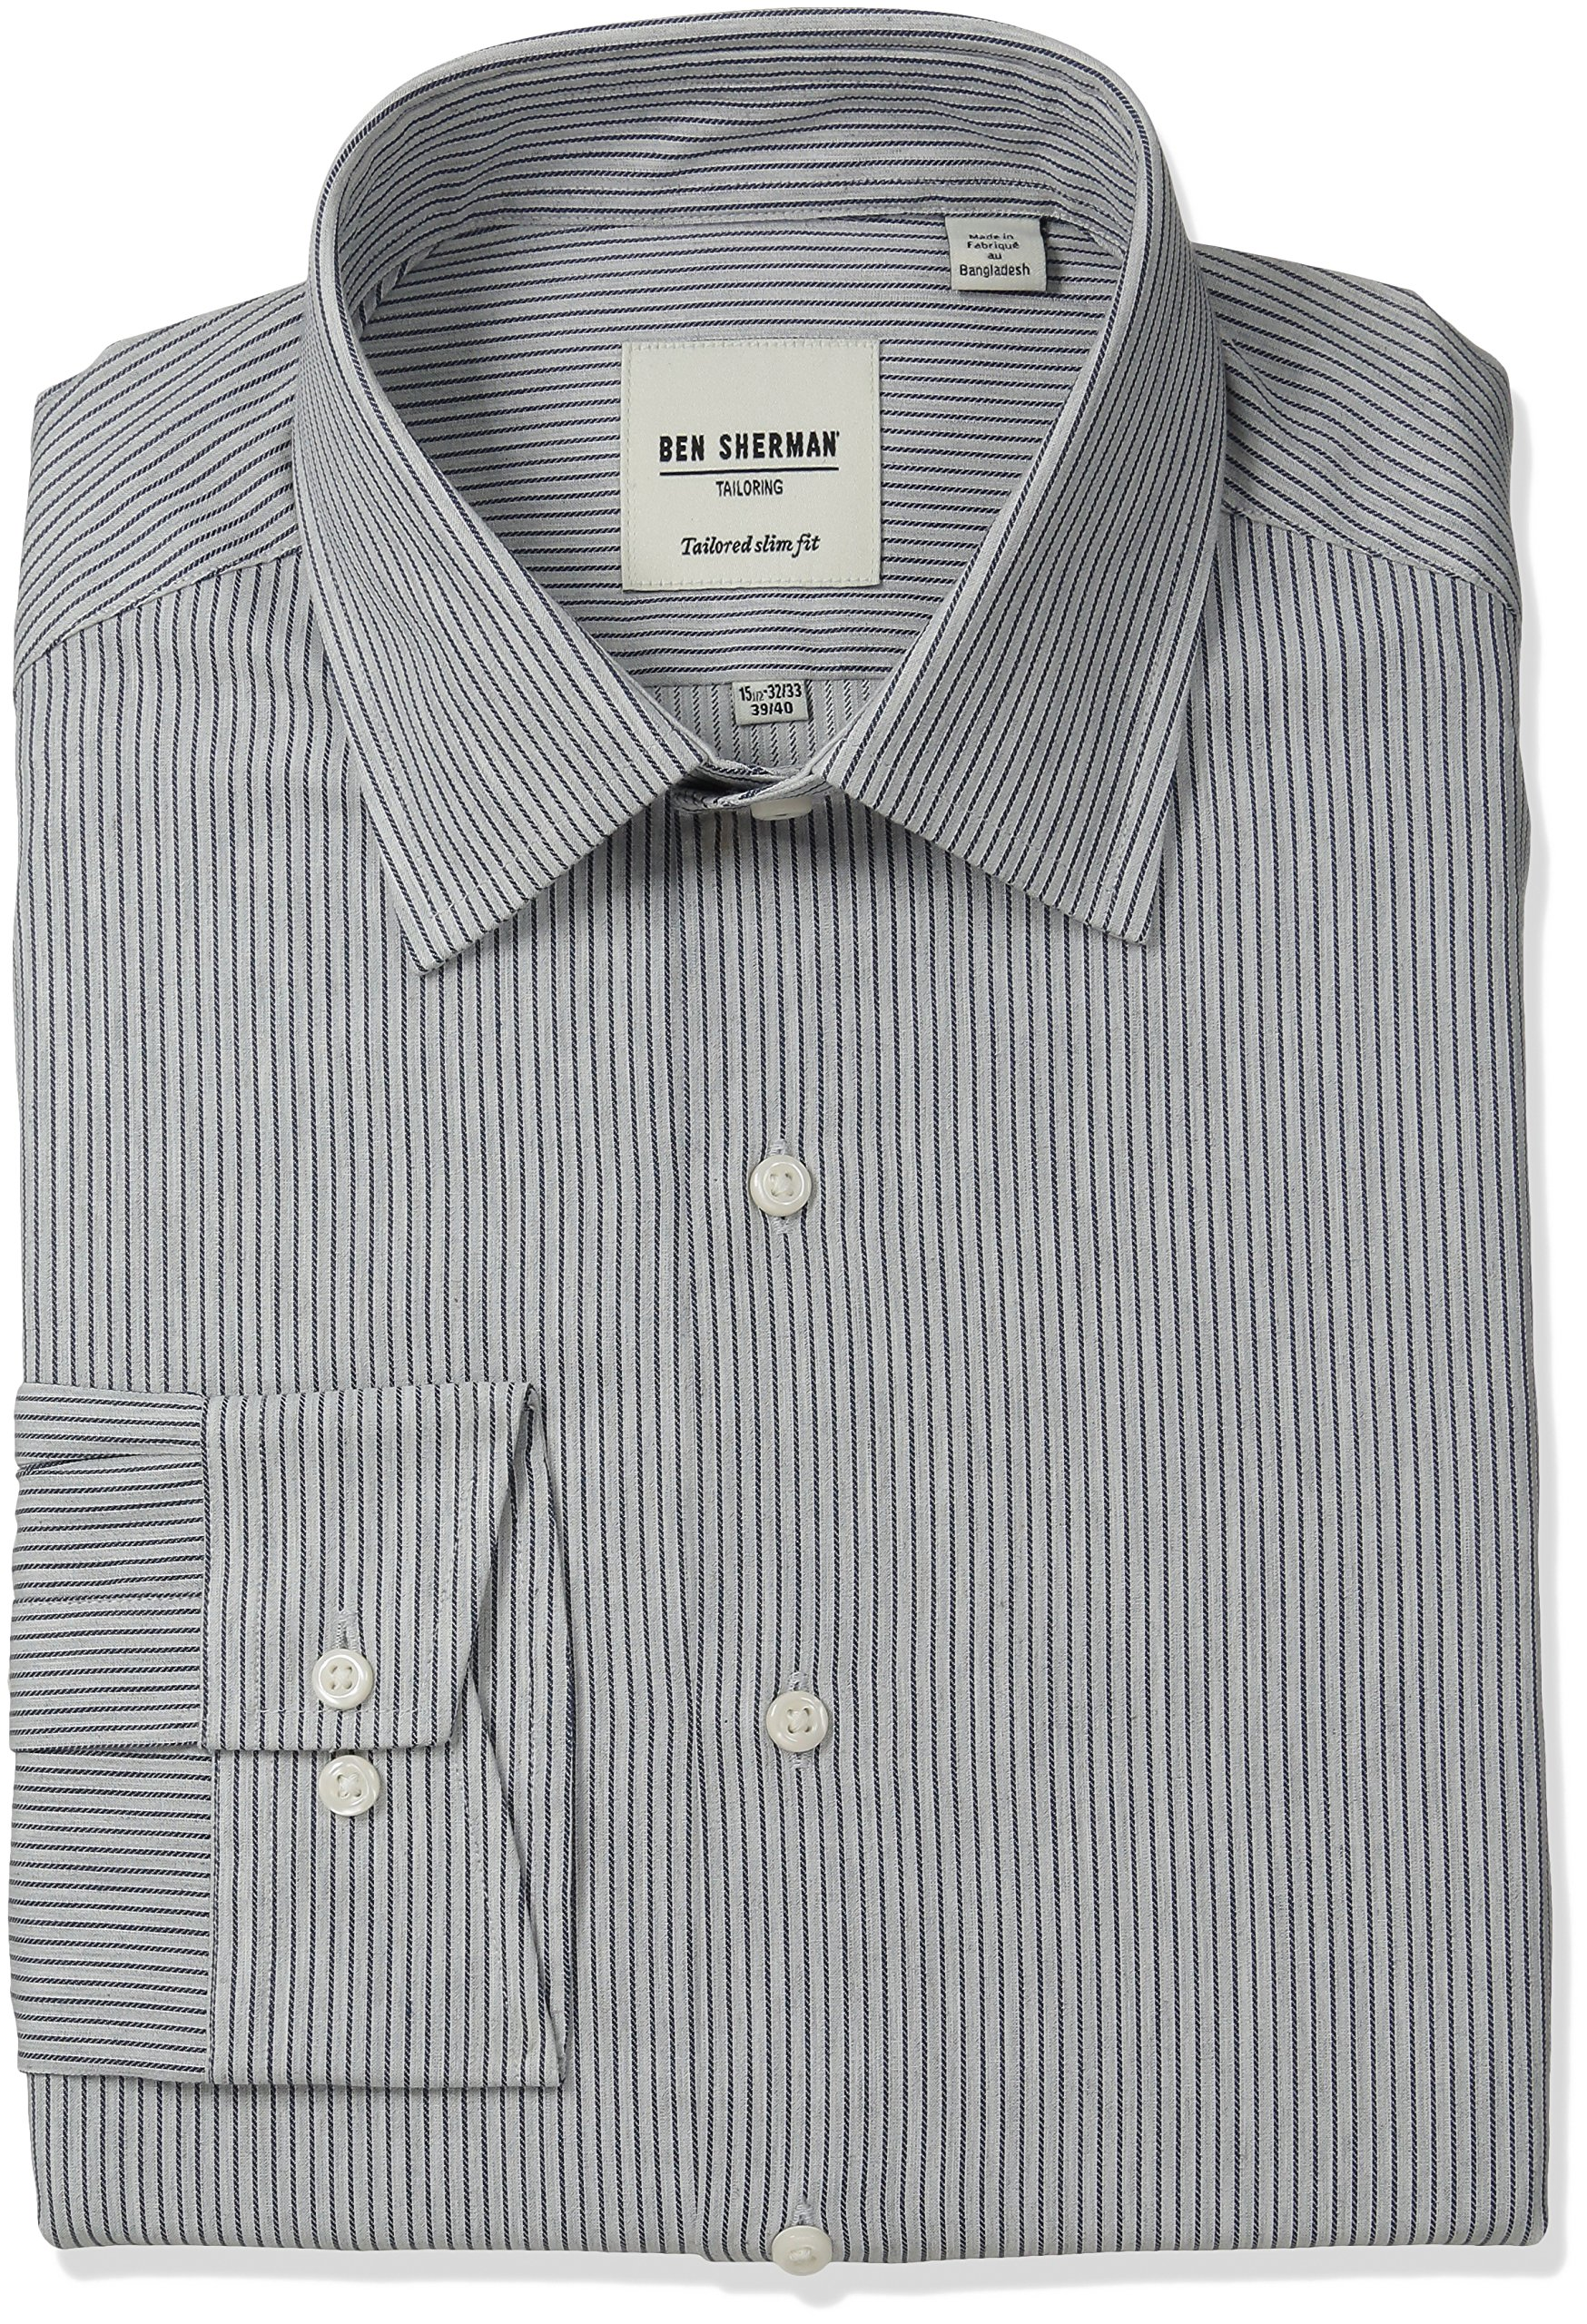 Ben Sherman Men's Slim Fit Fine Stripe Spread Collar Dress Shirt, Grey Heather/Navy, 16'' Neck 34''-35'' Sleeve